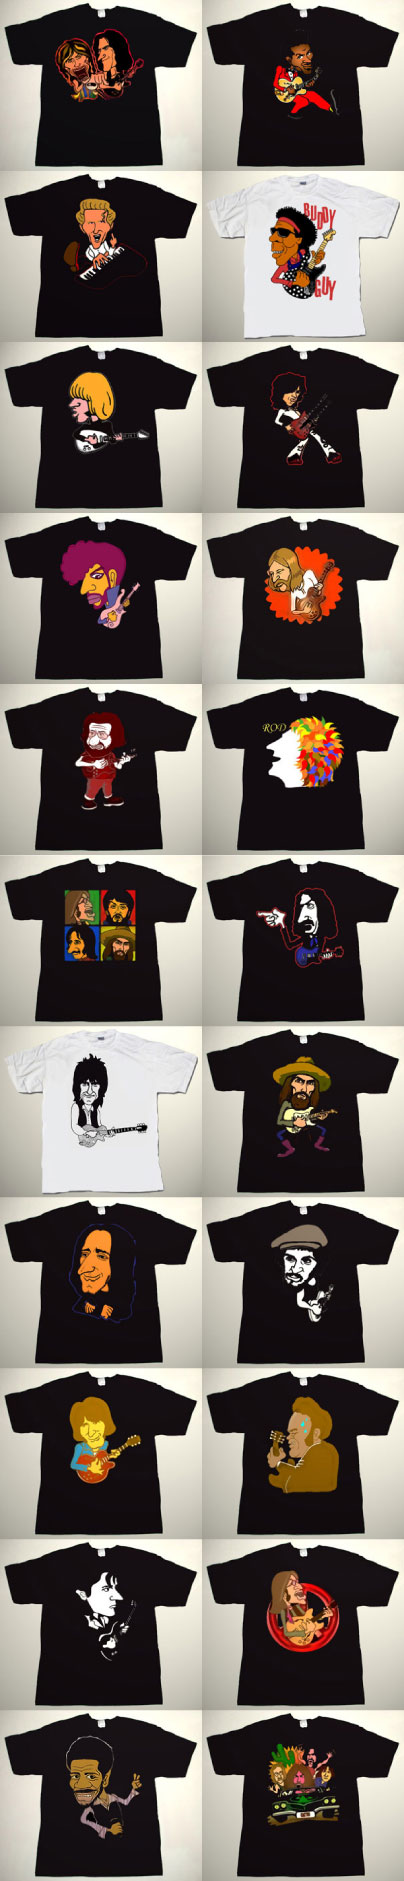 collectors ware pakuri t shirts